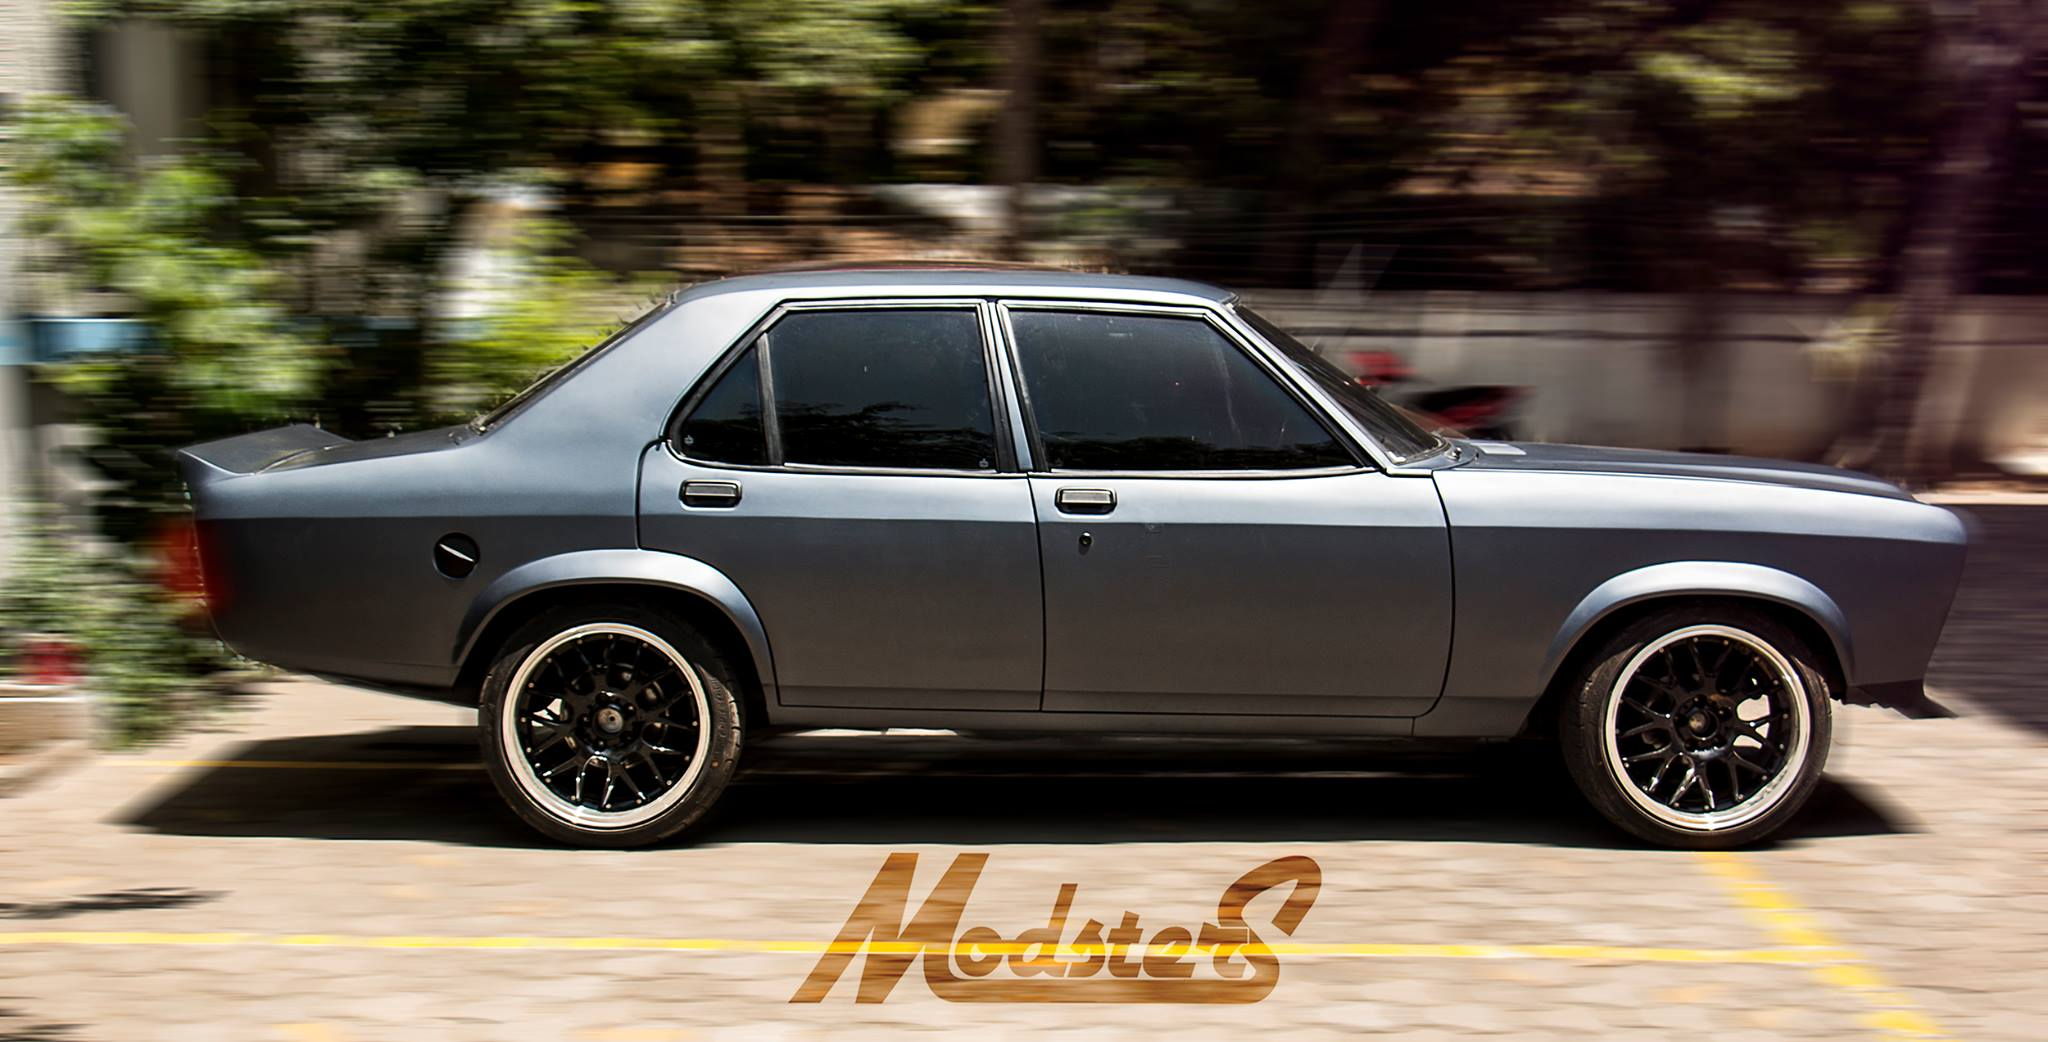 Modified Contessa Car In India With Images And All Details On